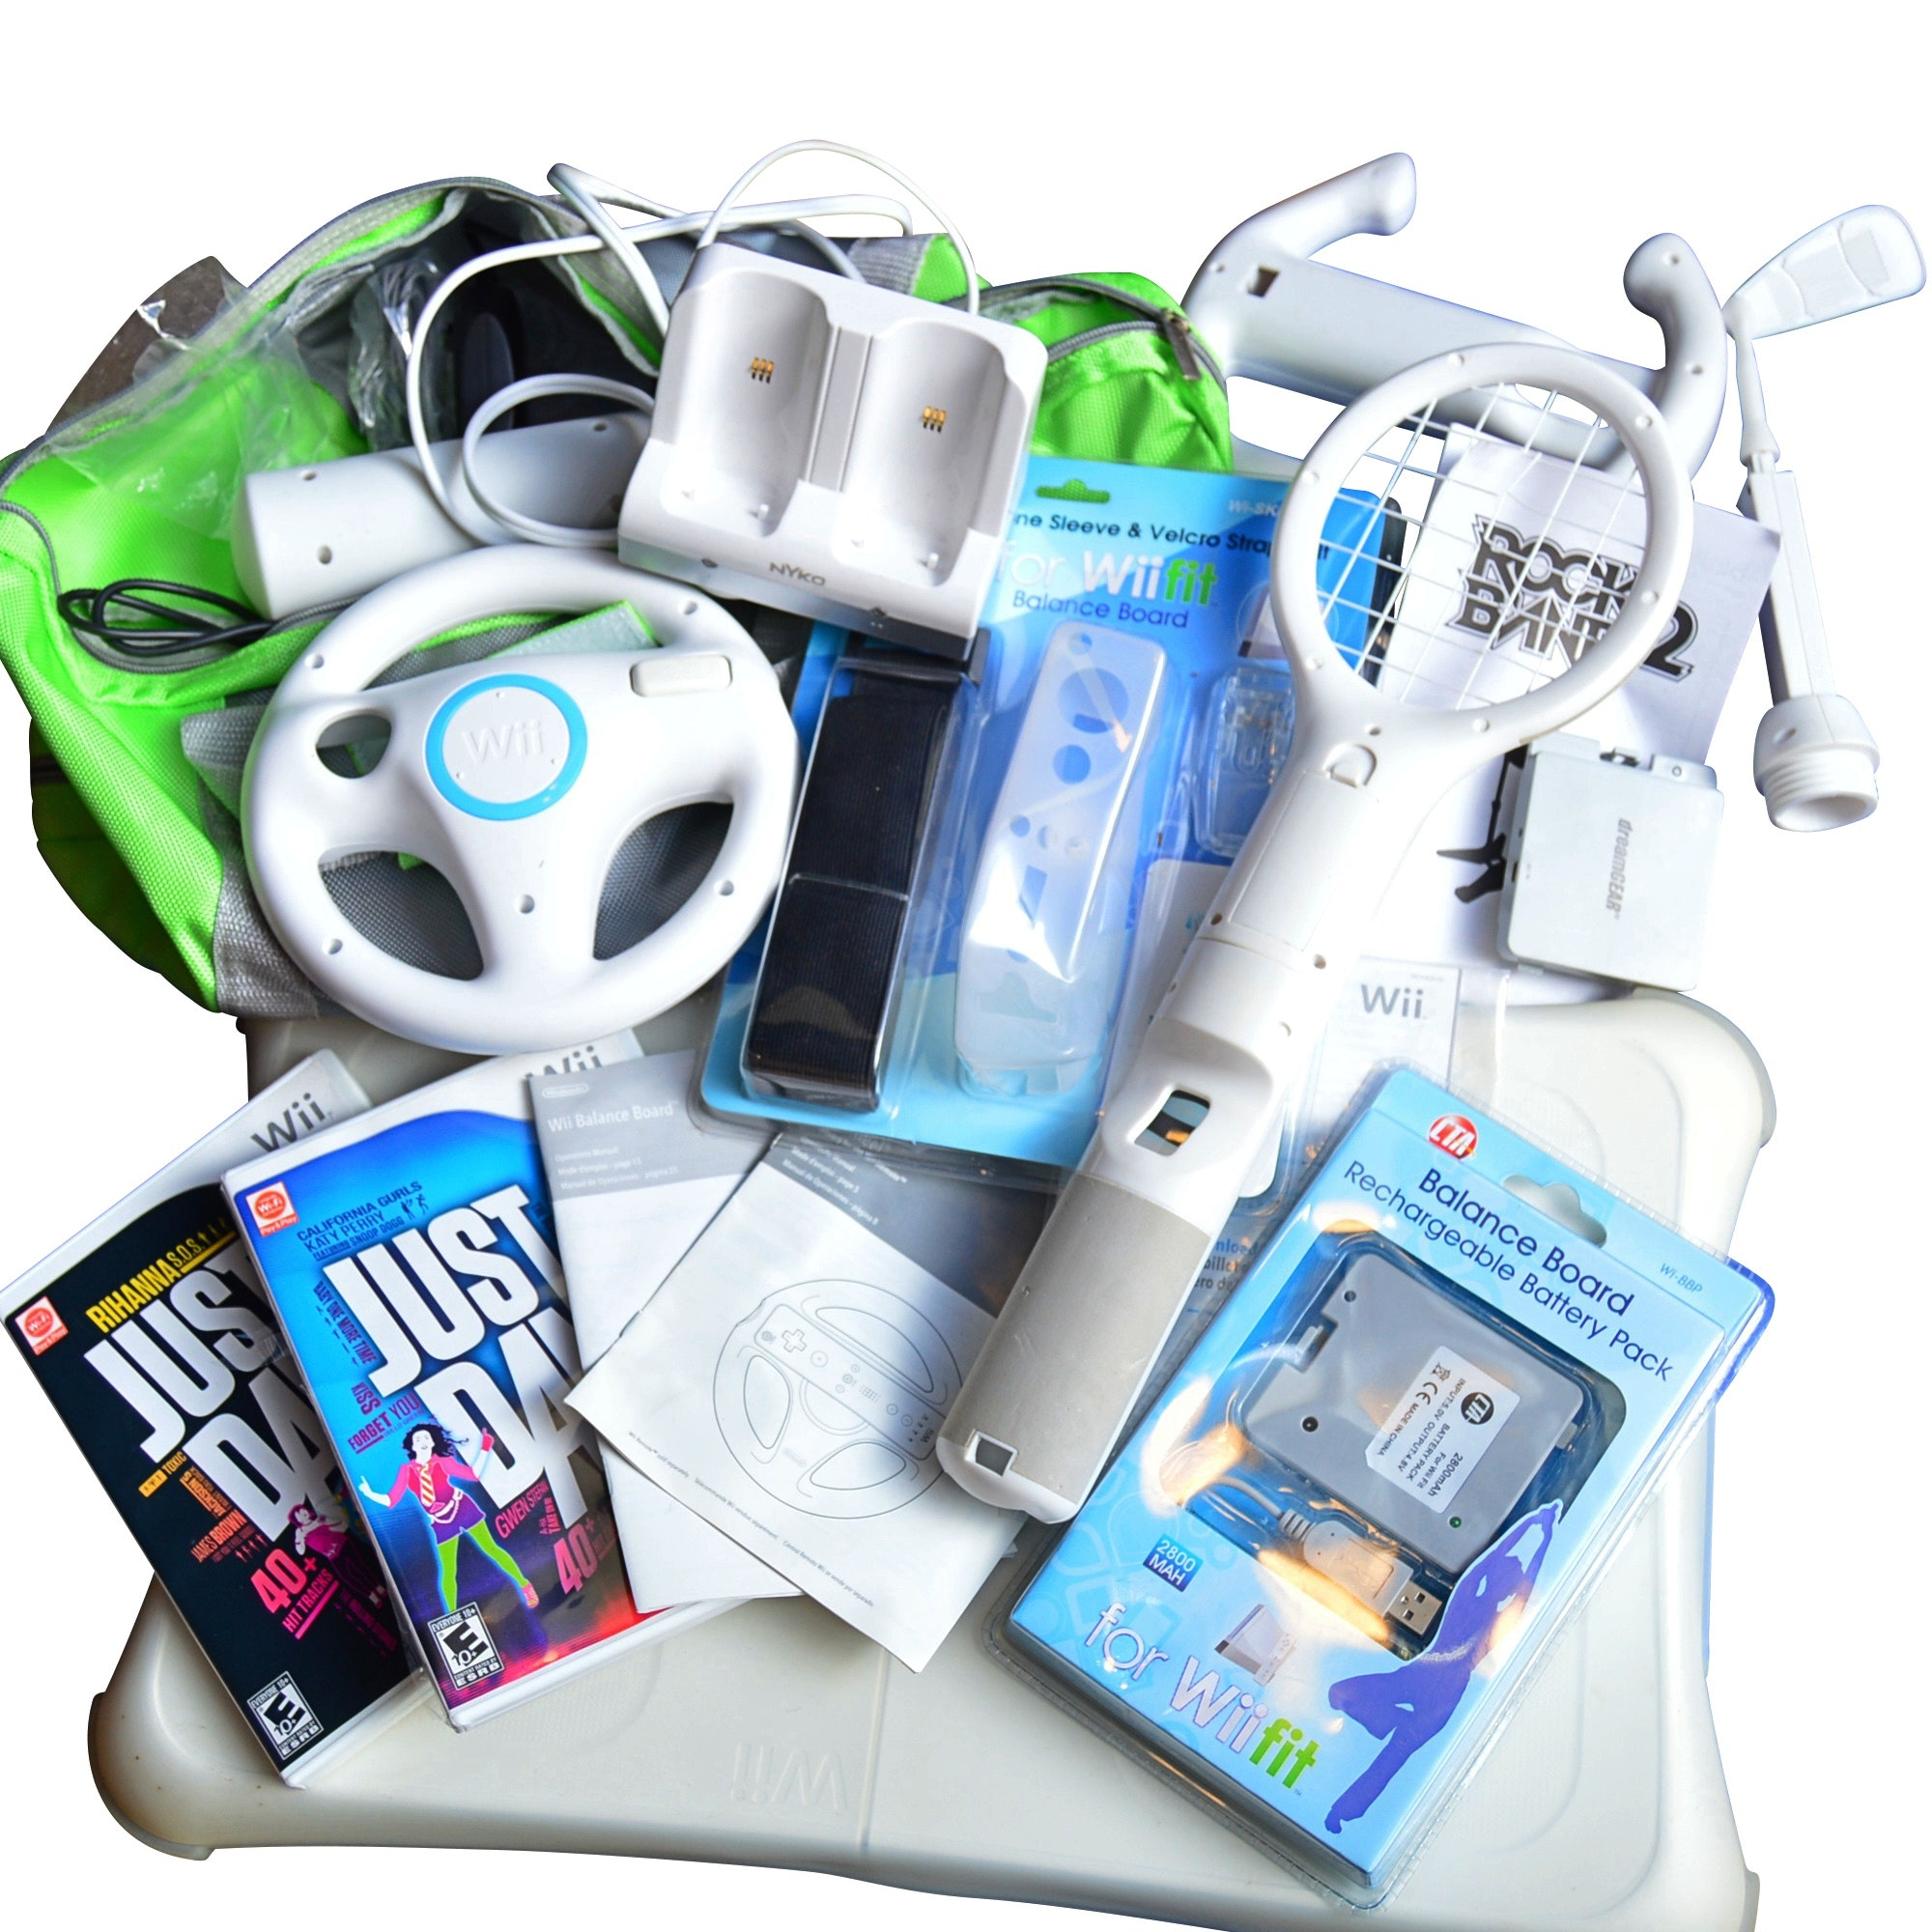 Wii with Balance Board with Accessories, Wii+PlayStationGames, Foam Roller, Mats